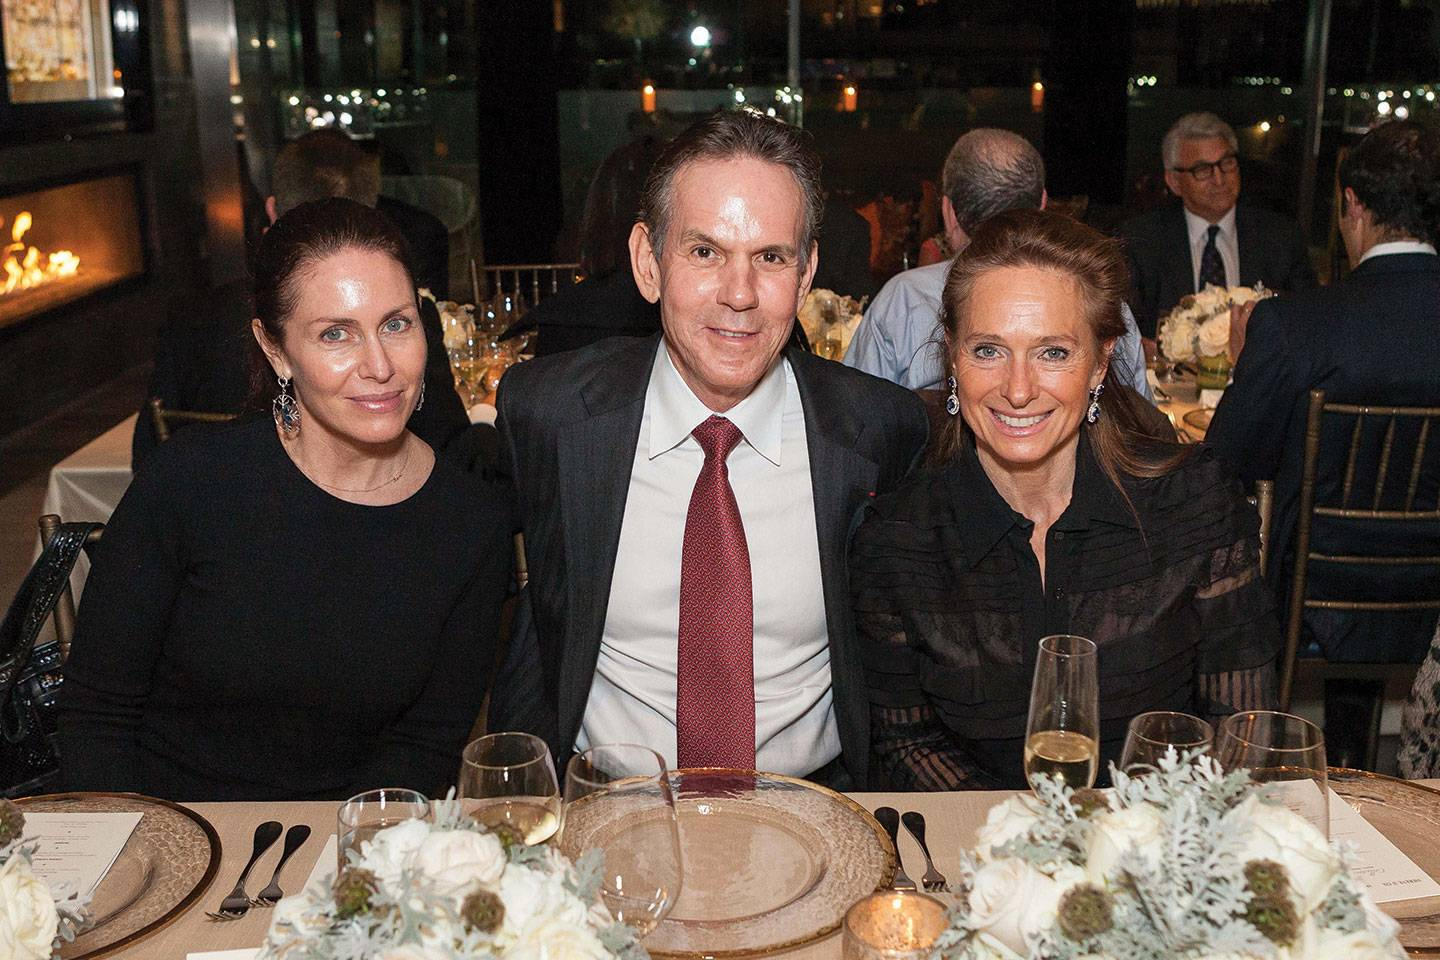 Laura Cunningham, Thomas Keller and Elizabeth Thieriot